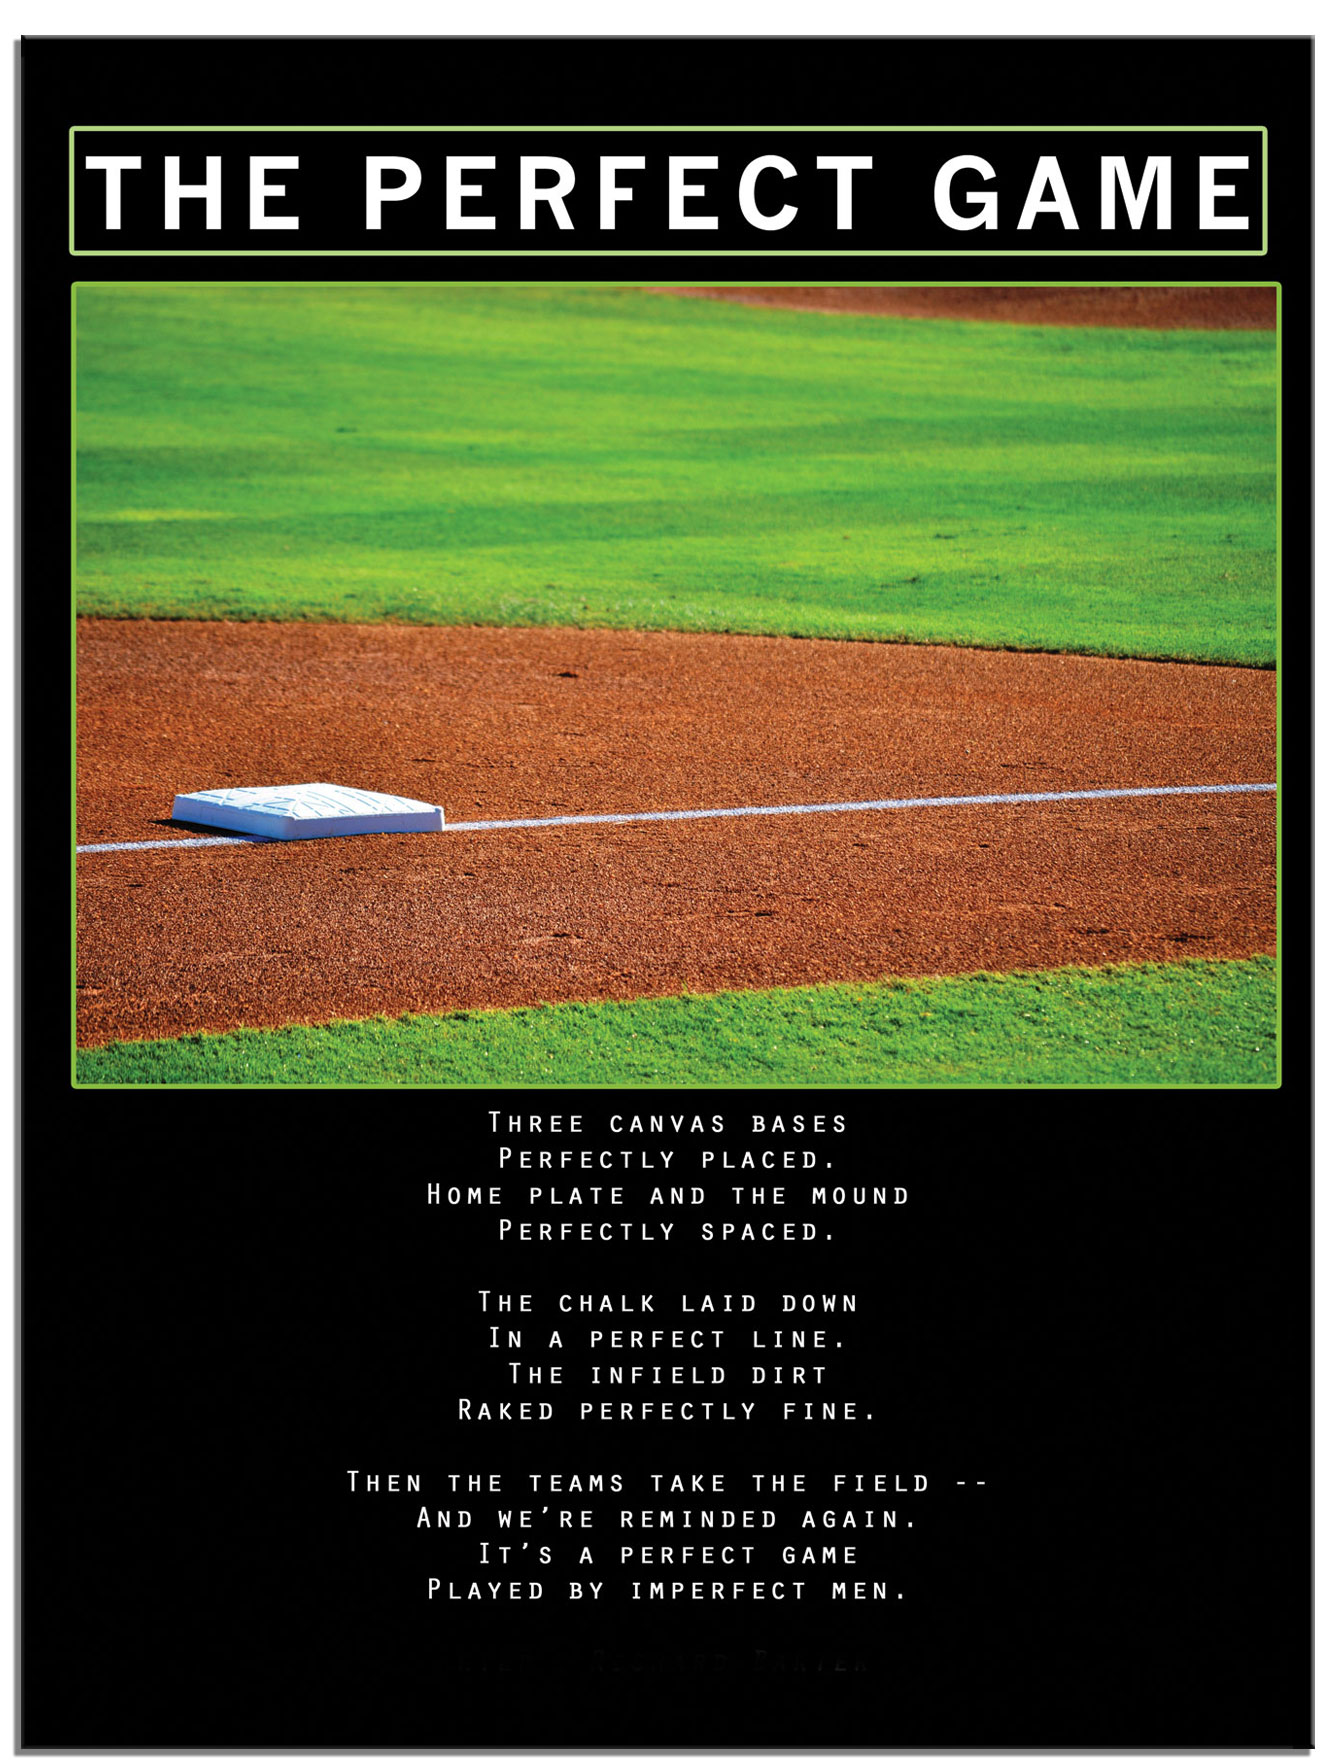 Pitcher Quotes And Sayings Www Topsimages Com